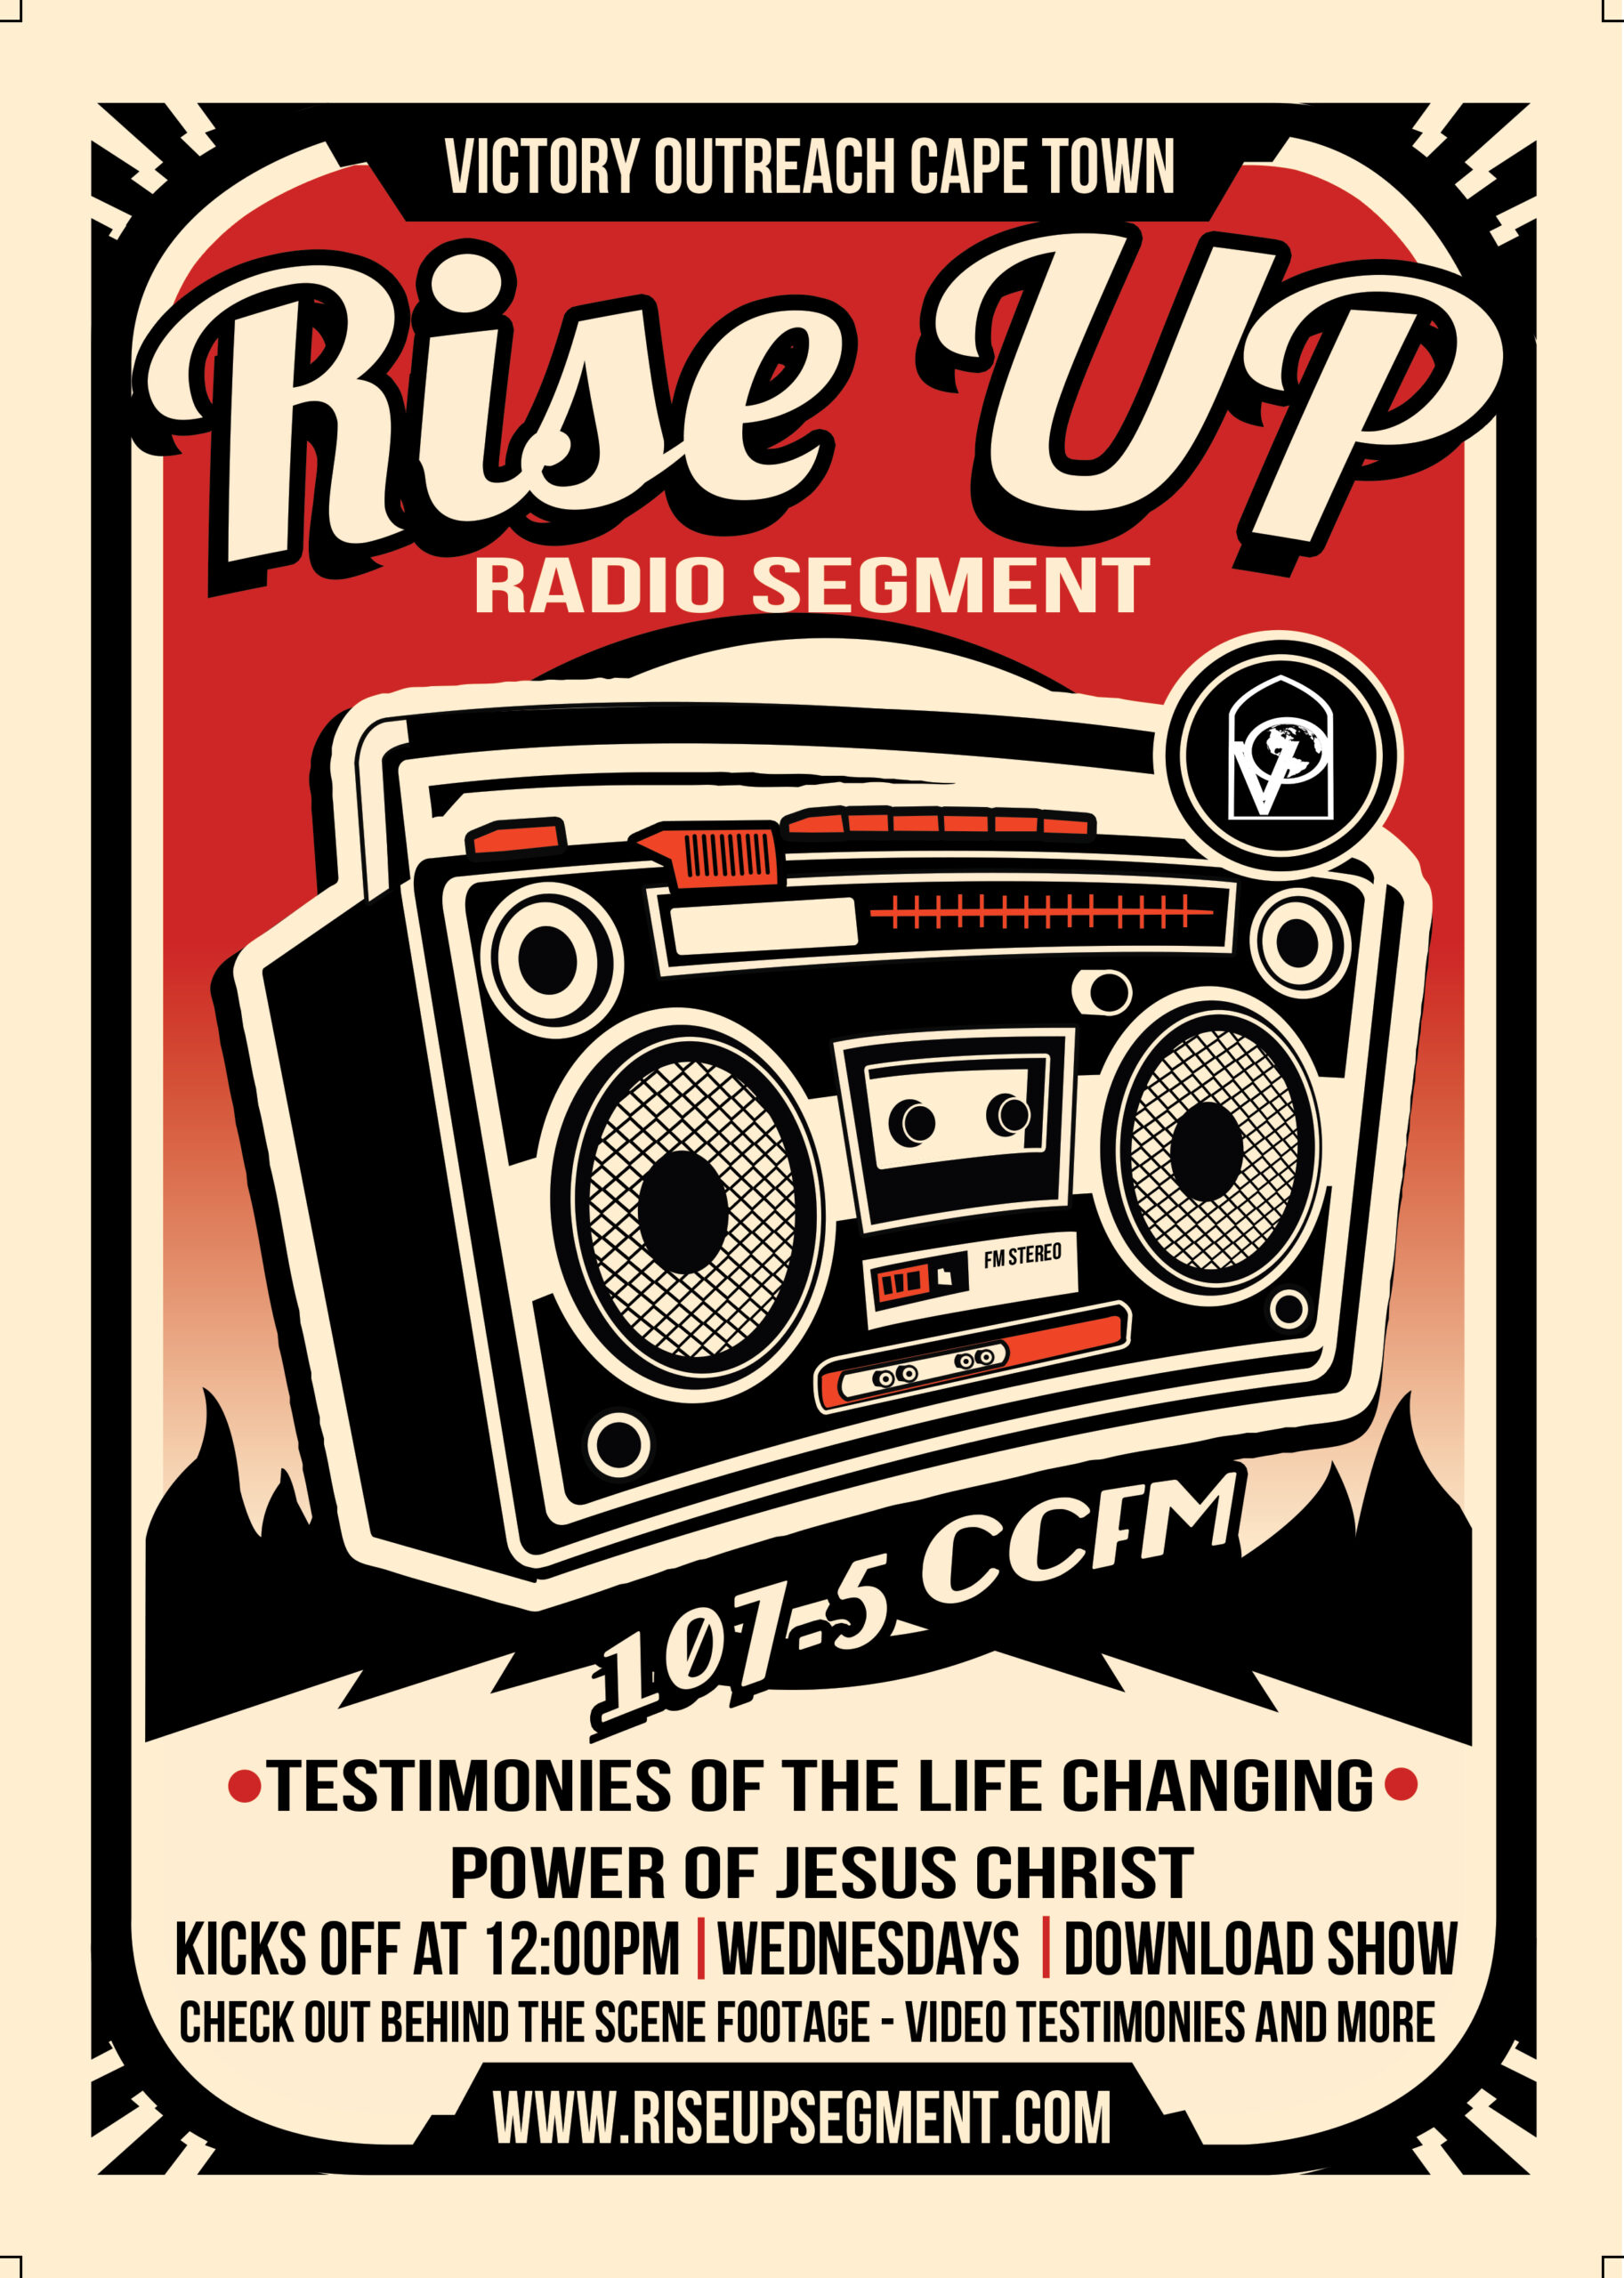 rise-up-radio-segment-boom-box